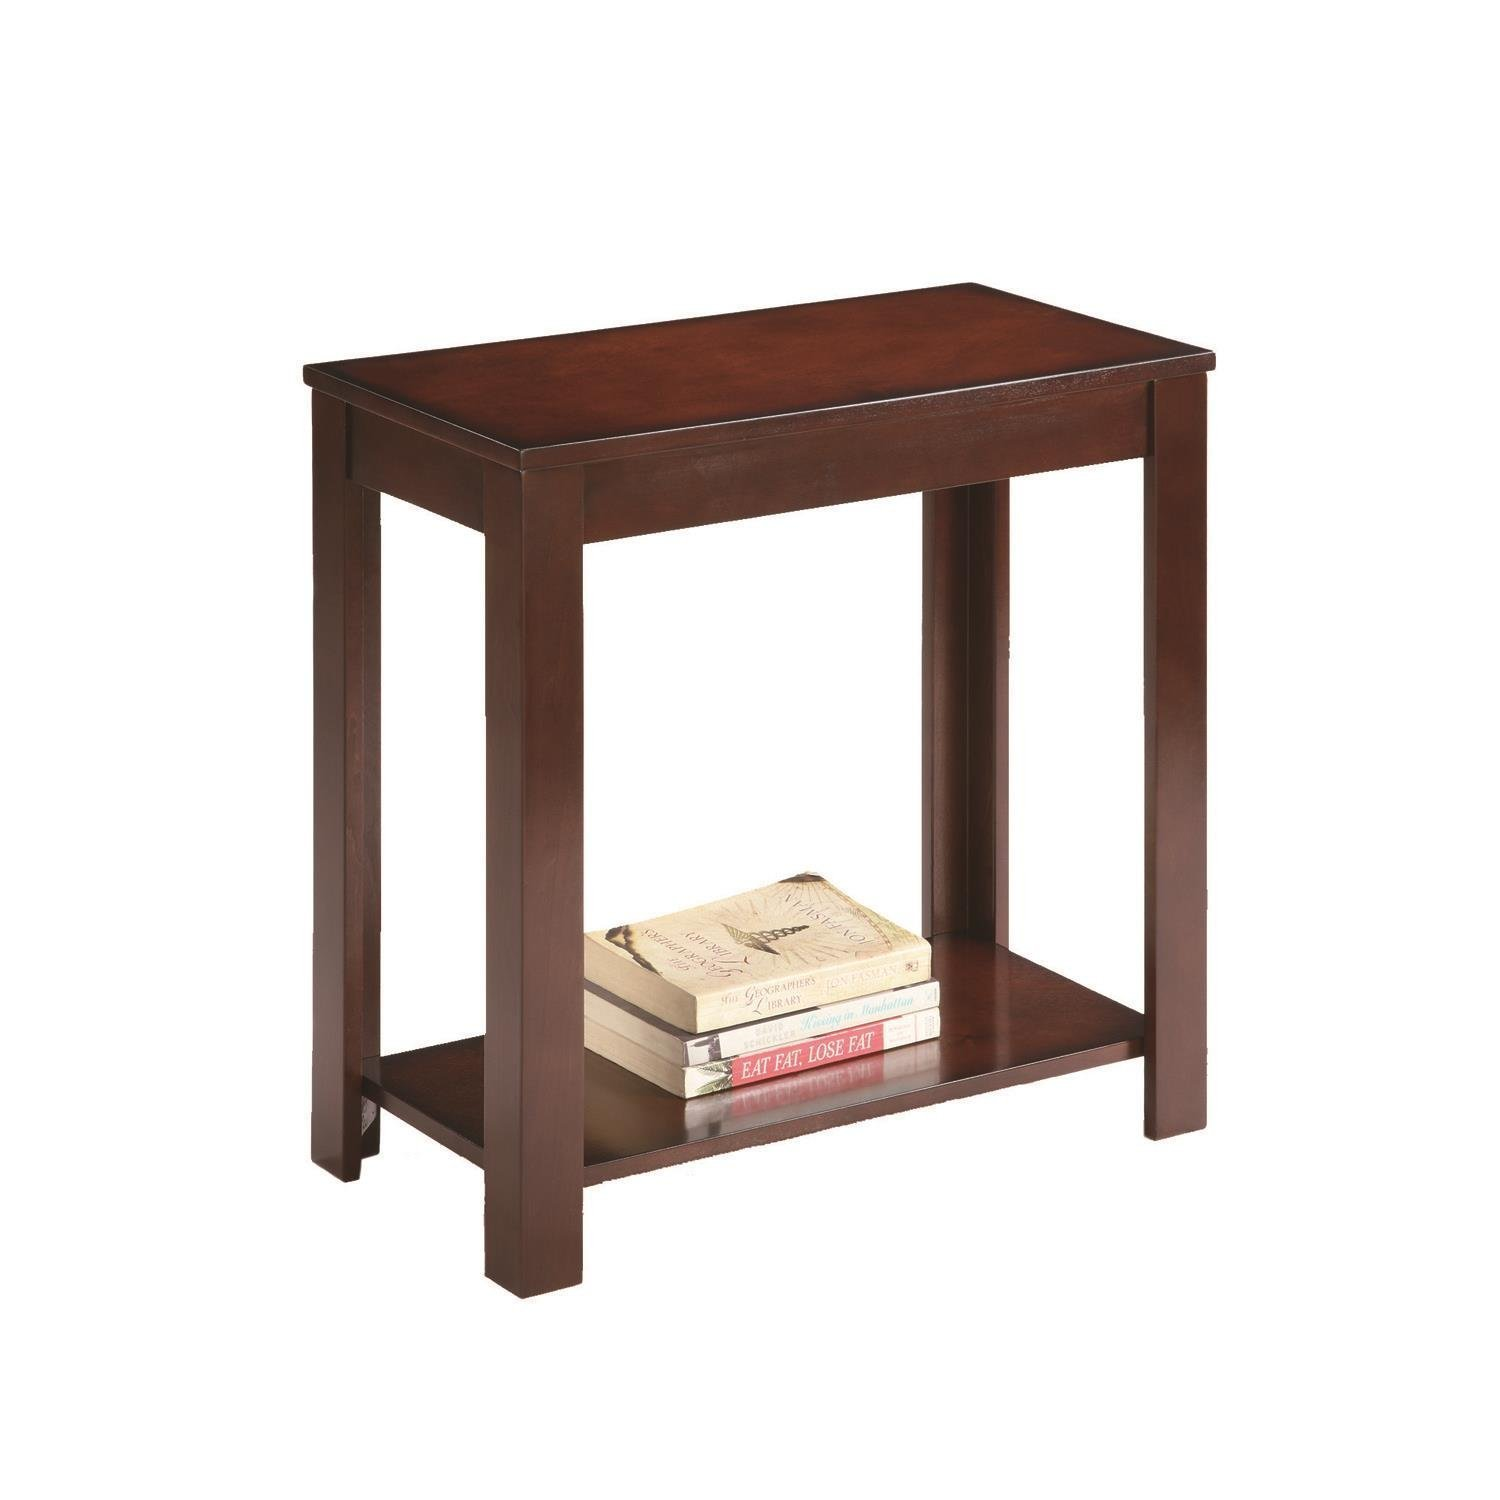 Ore international traditional side end table inch